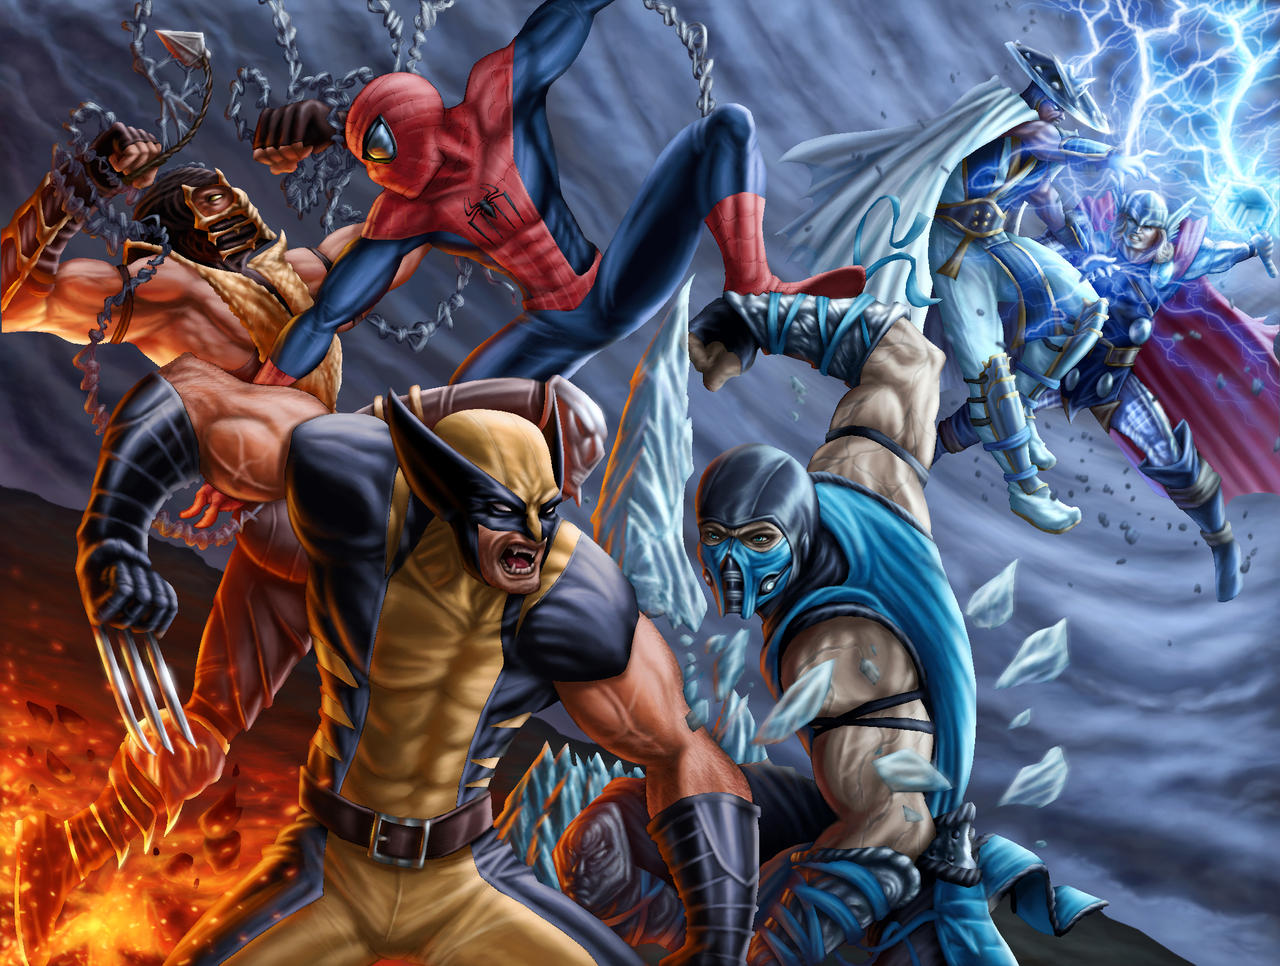 Dreno360 Mortal Kombat VS Avengers By Vic55b On DeviantArt